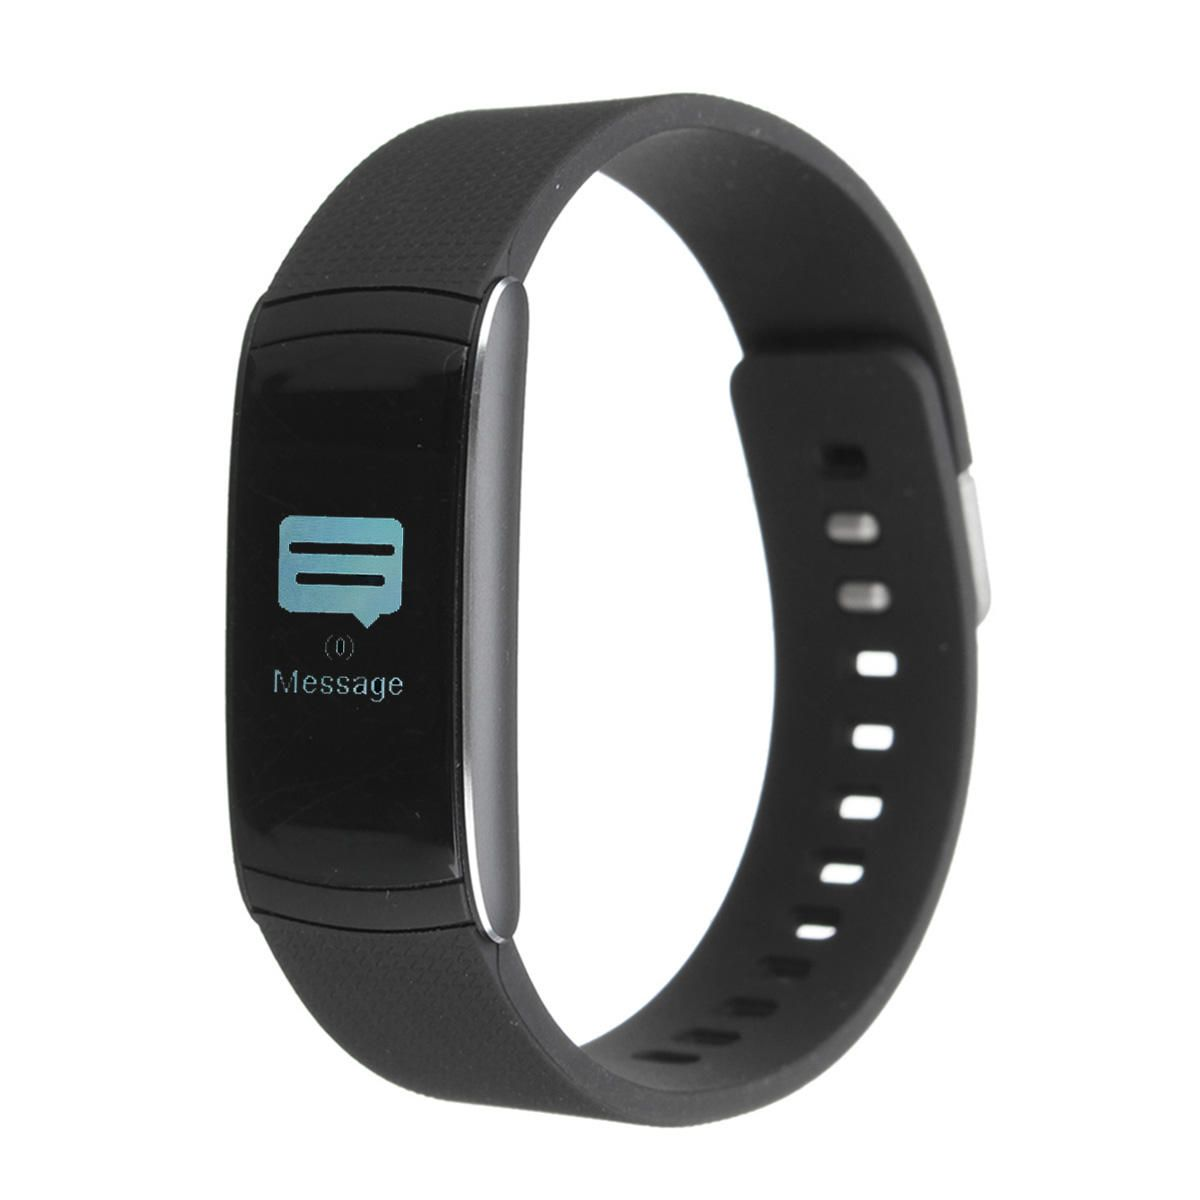 BUY Bluetooth 4.0 I6PRO Smart Heart Rate Sports Fitness